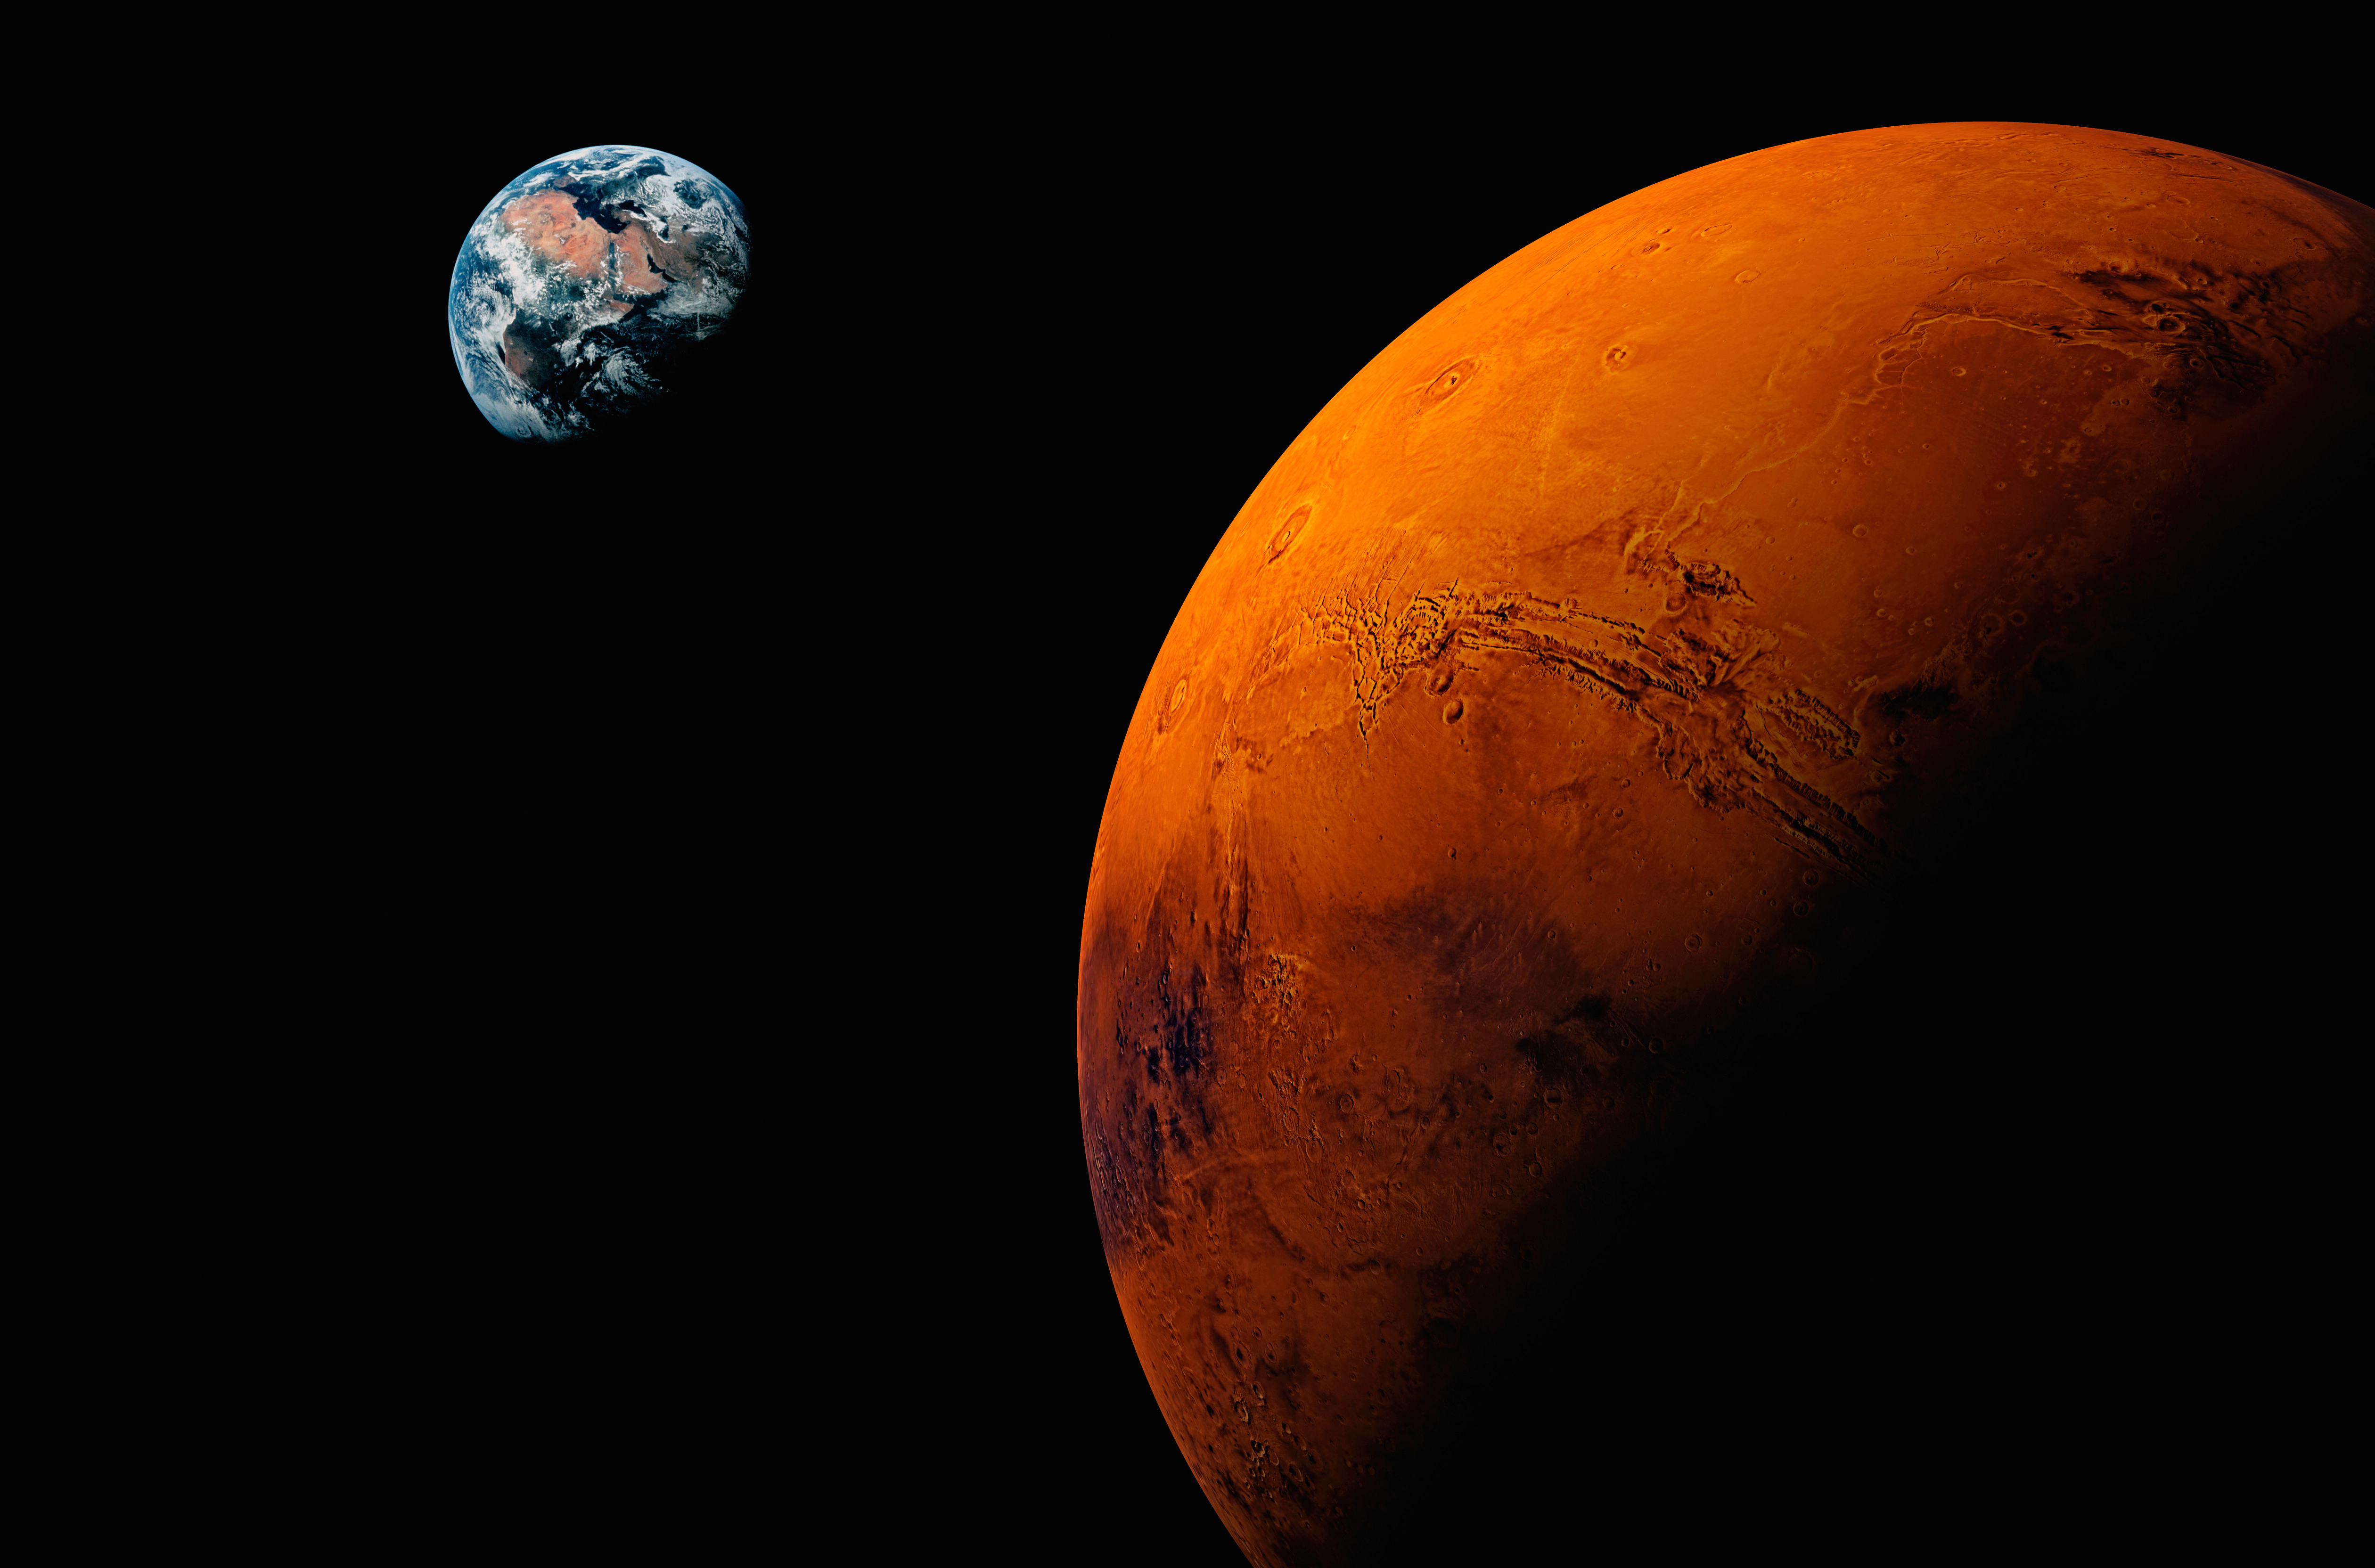 Planet Mars, with Earth visible in the background